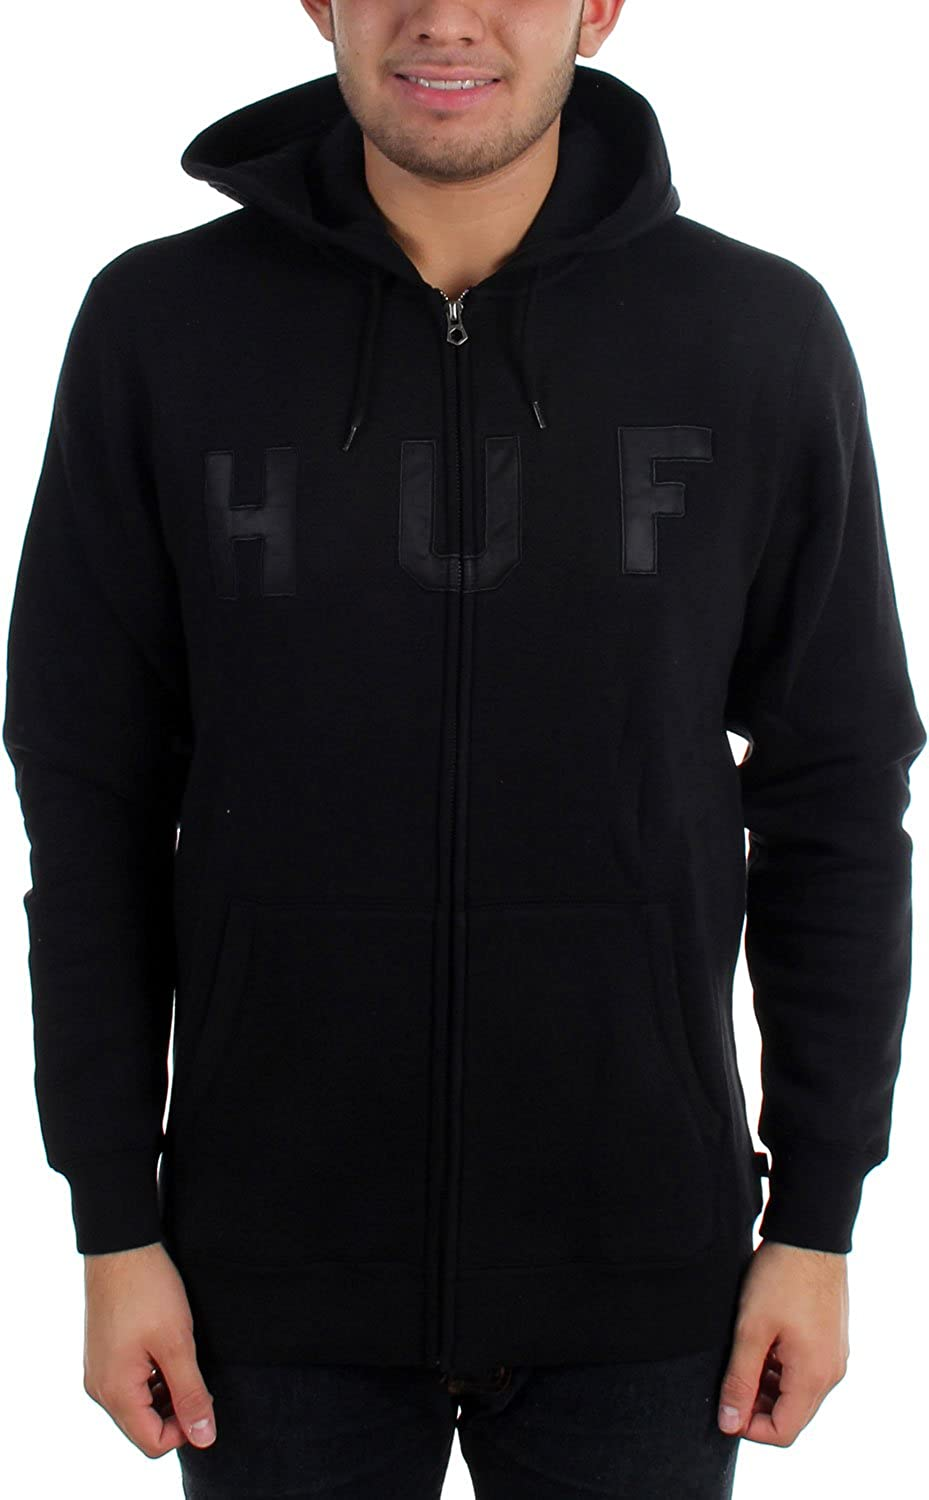 HUF Men's HUF Logo Zip Up Hoodie толстовка quelle rick cardona by heine 173779